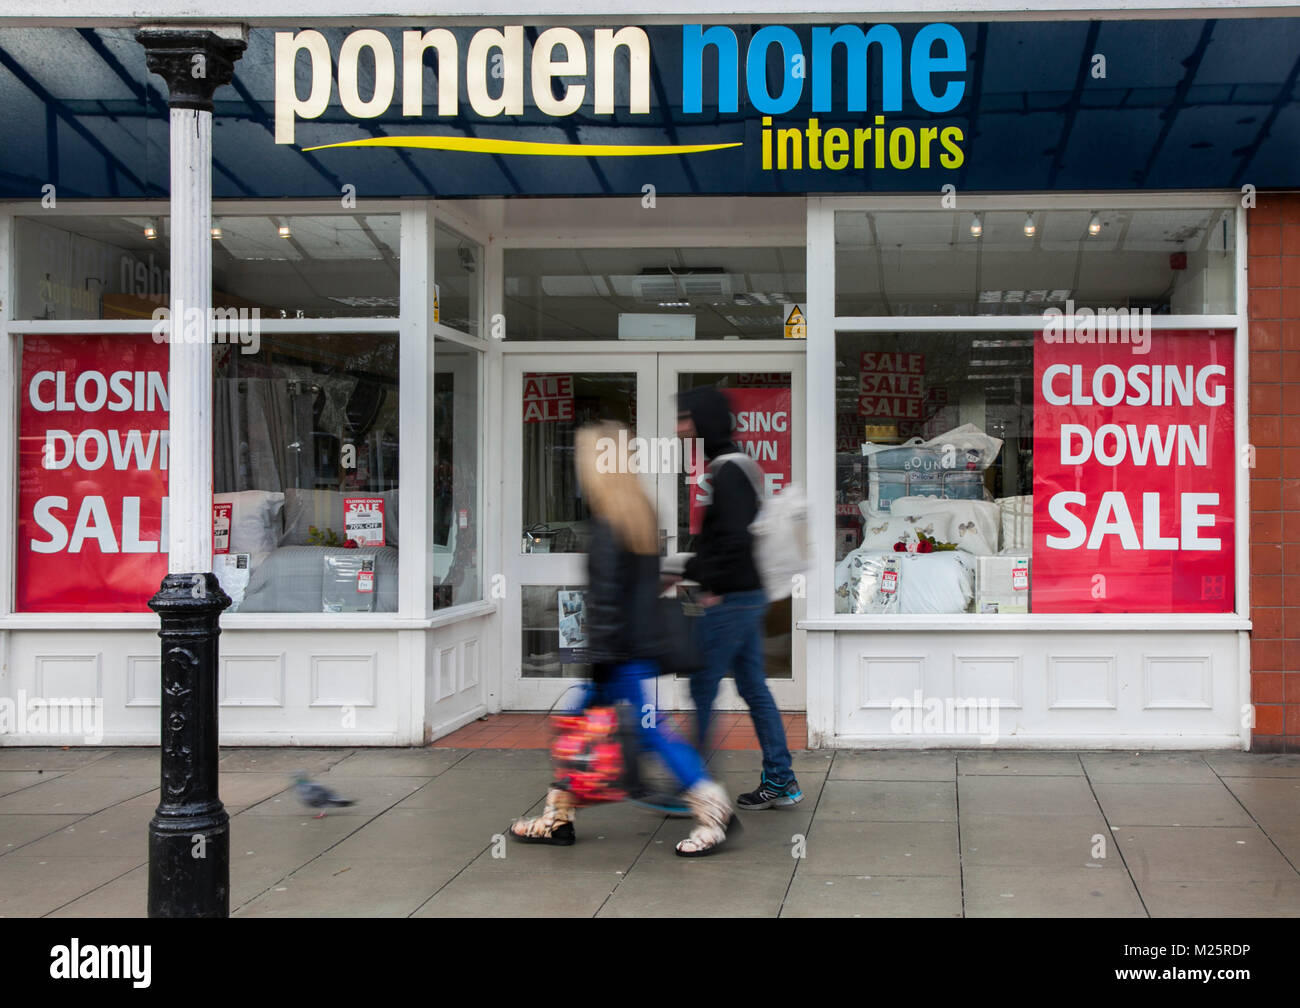 Closing down sale, shop front at Ponden Store, Lord street. Southport, UK - Stock Image